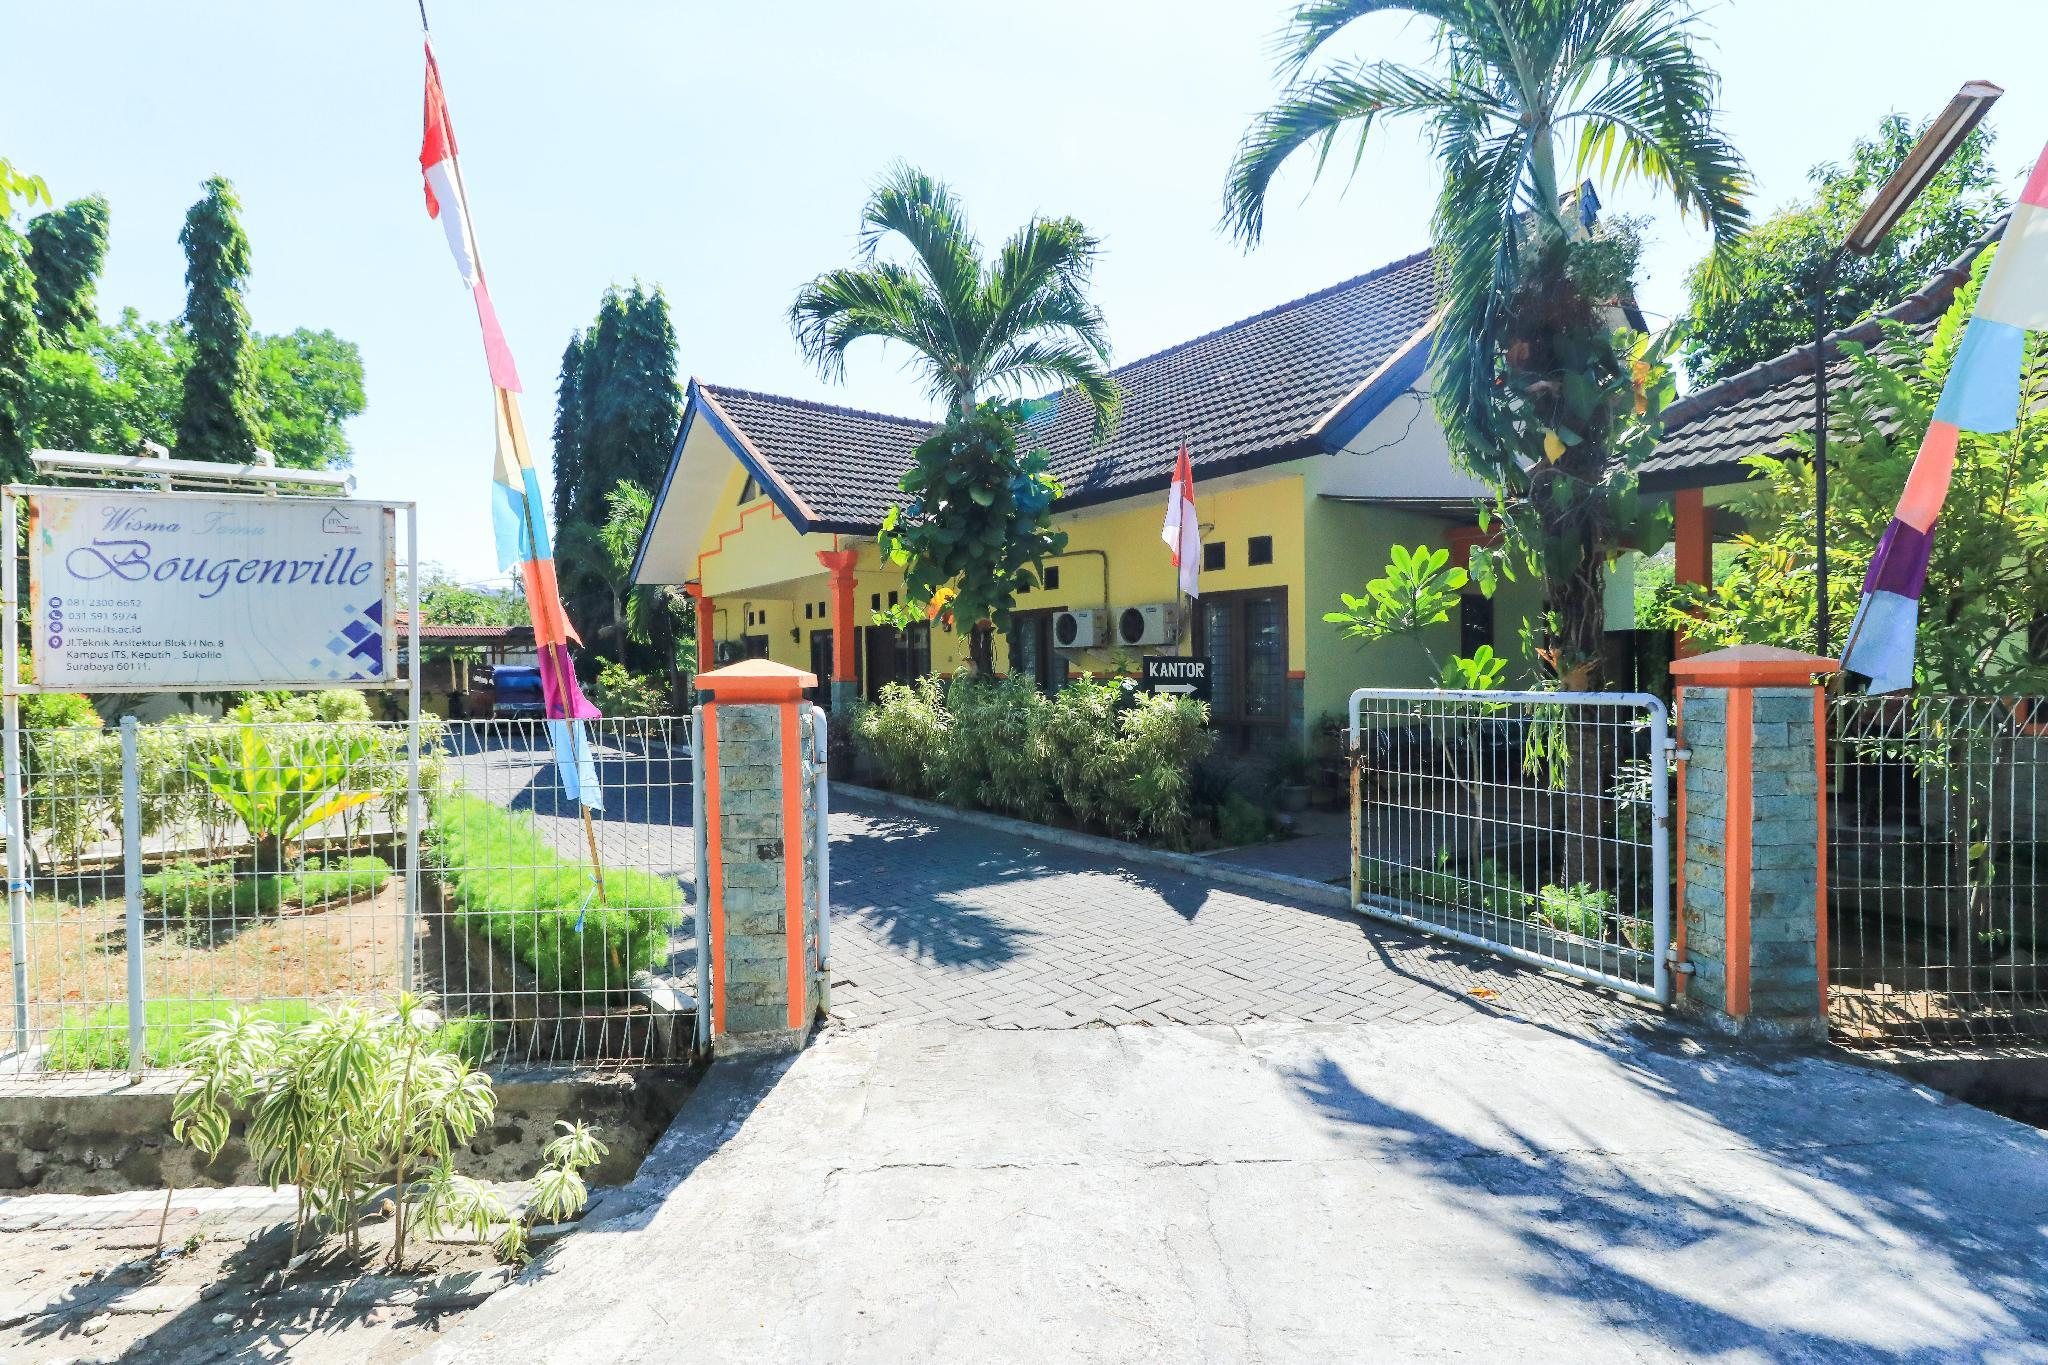 Wisma Bougenville